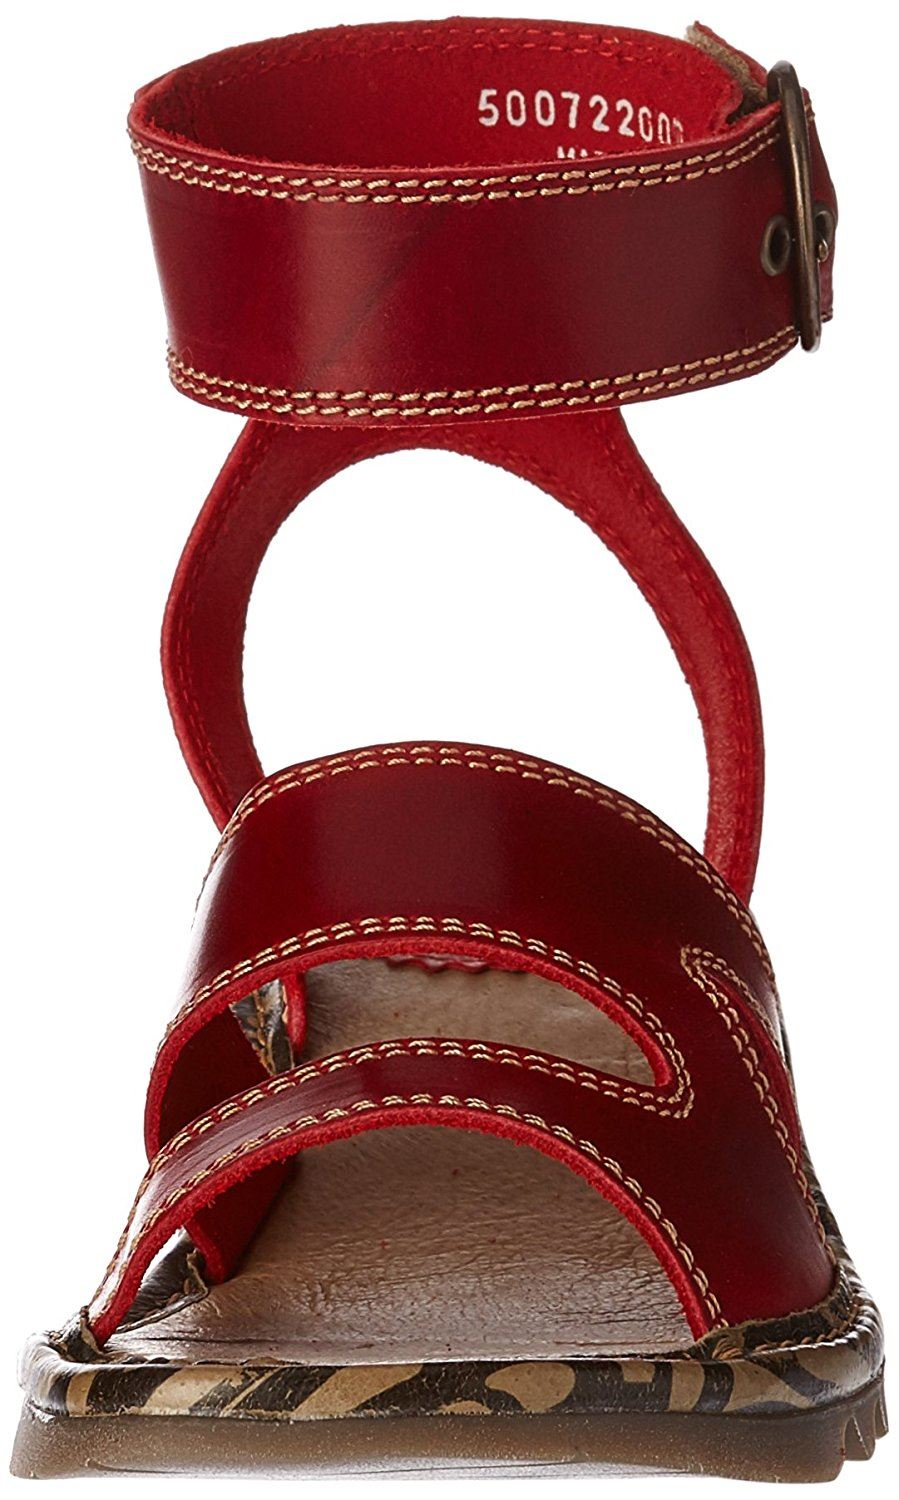 Fly-London-TILY722FLY-Ladies-Strappy-Gladiator-Style-Leather-Wedge-Sandals thumbnail 18